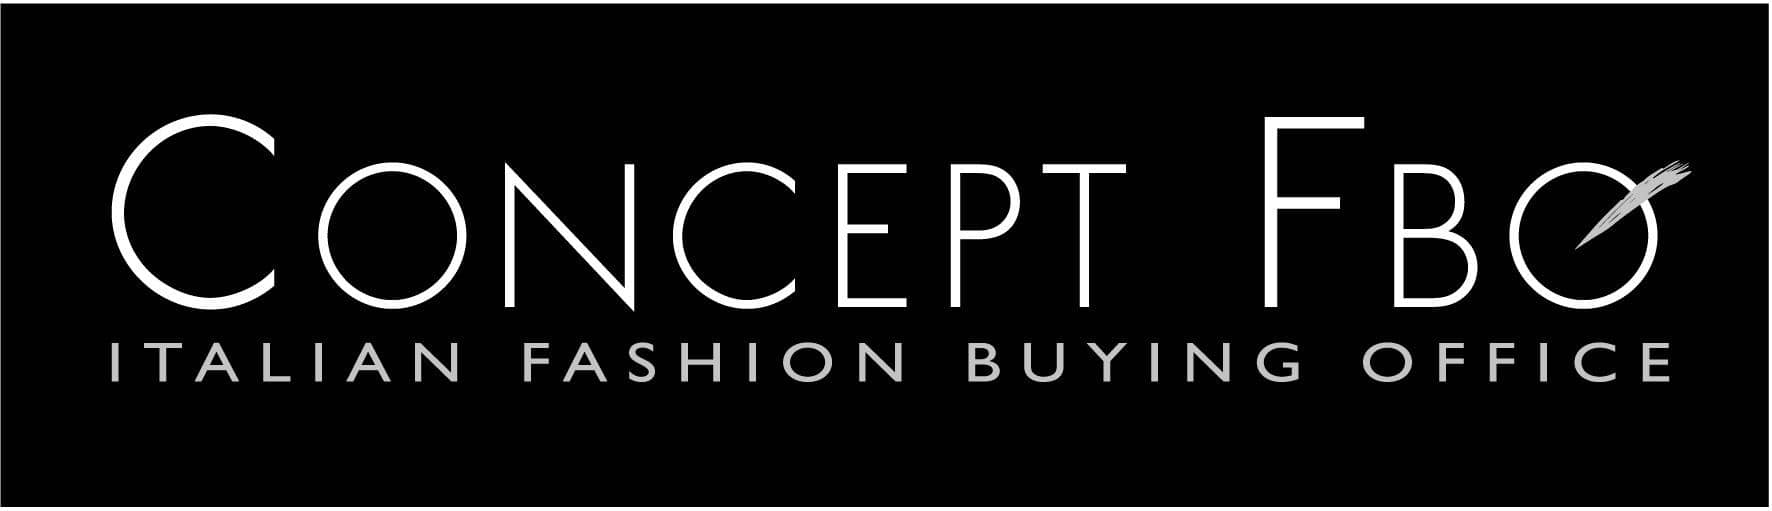 CONCEPT F.B.O. - The Italian Buying Office for Fashion and Luxury